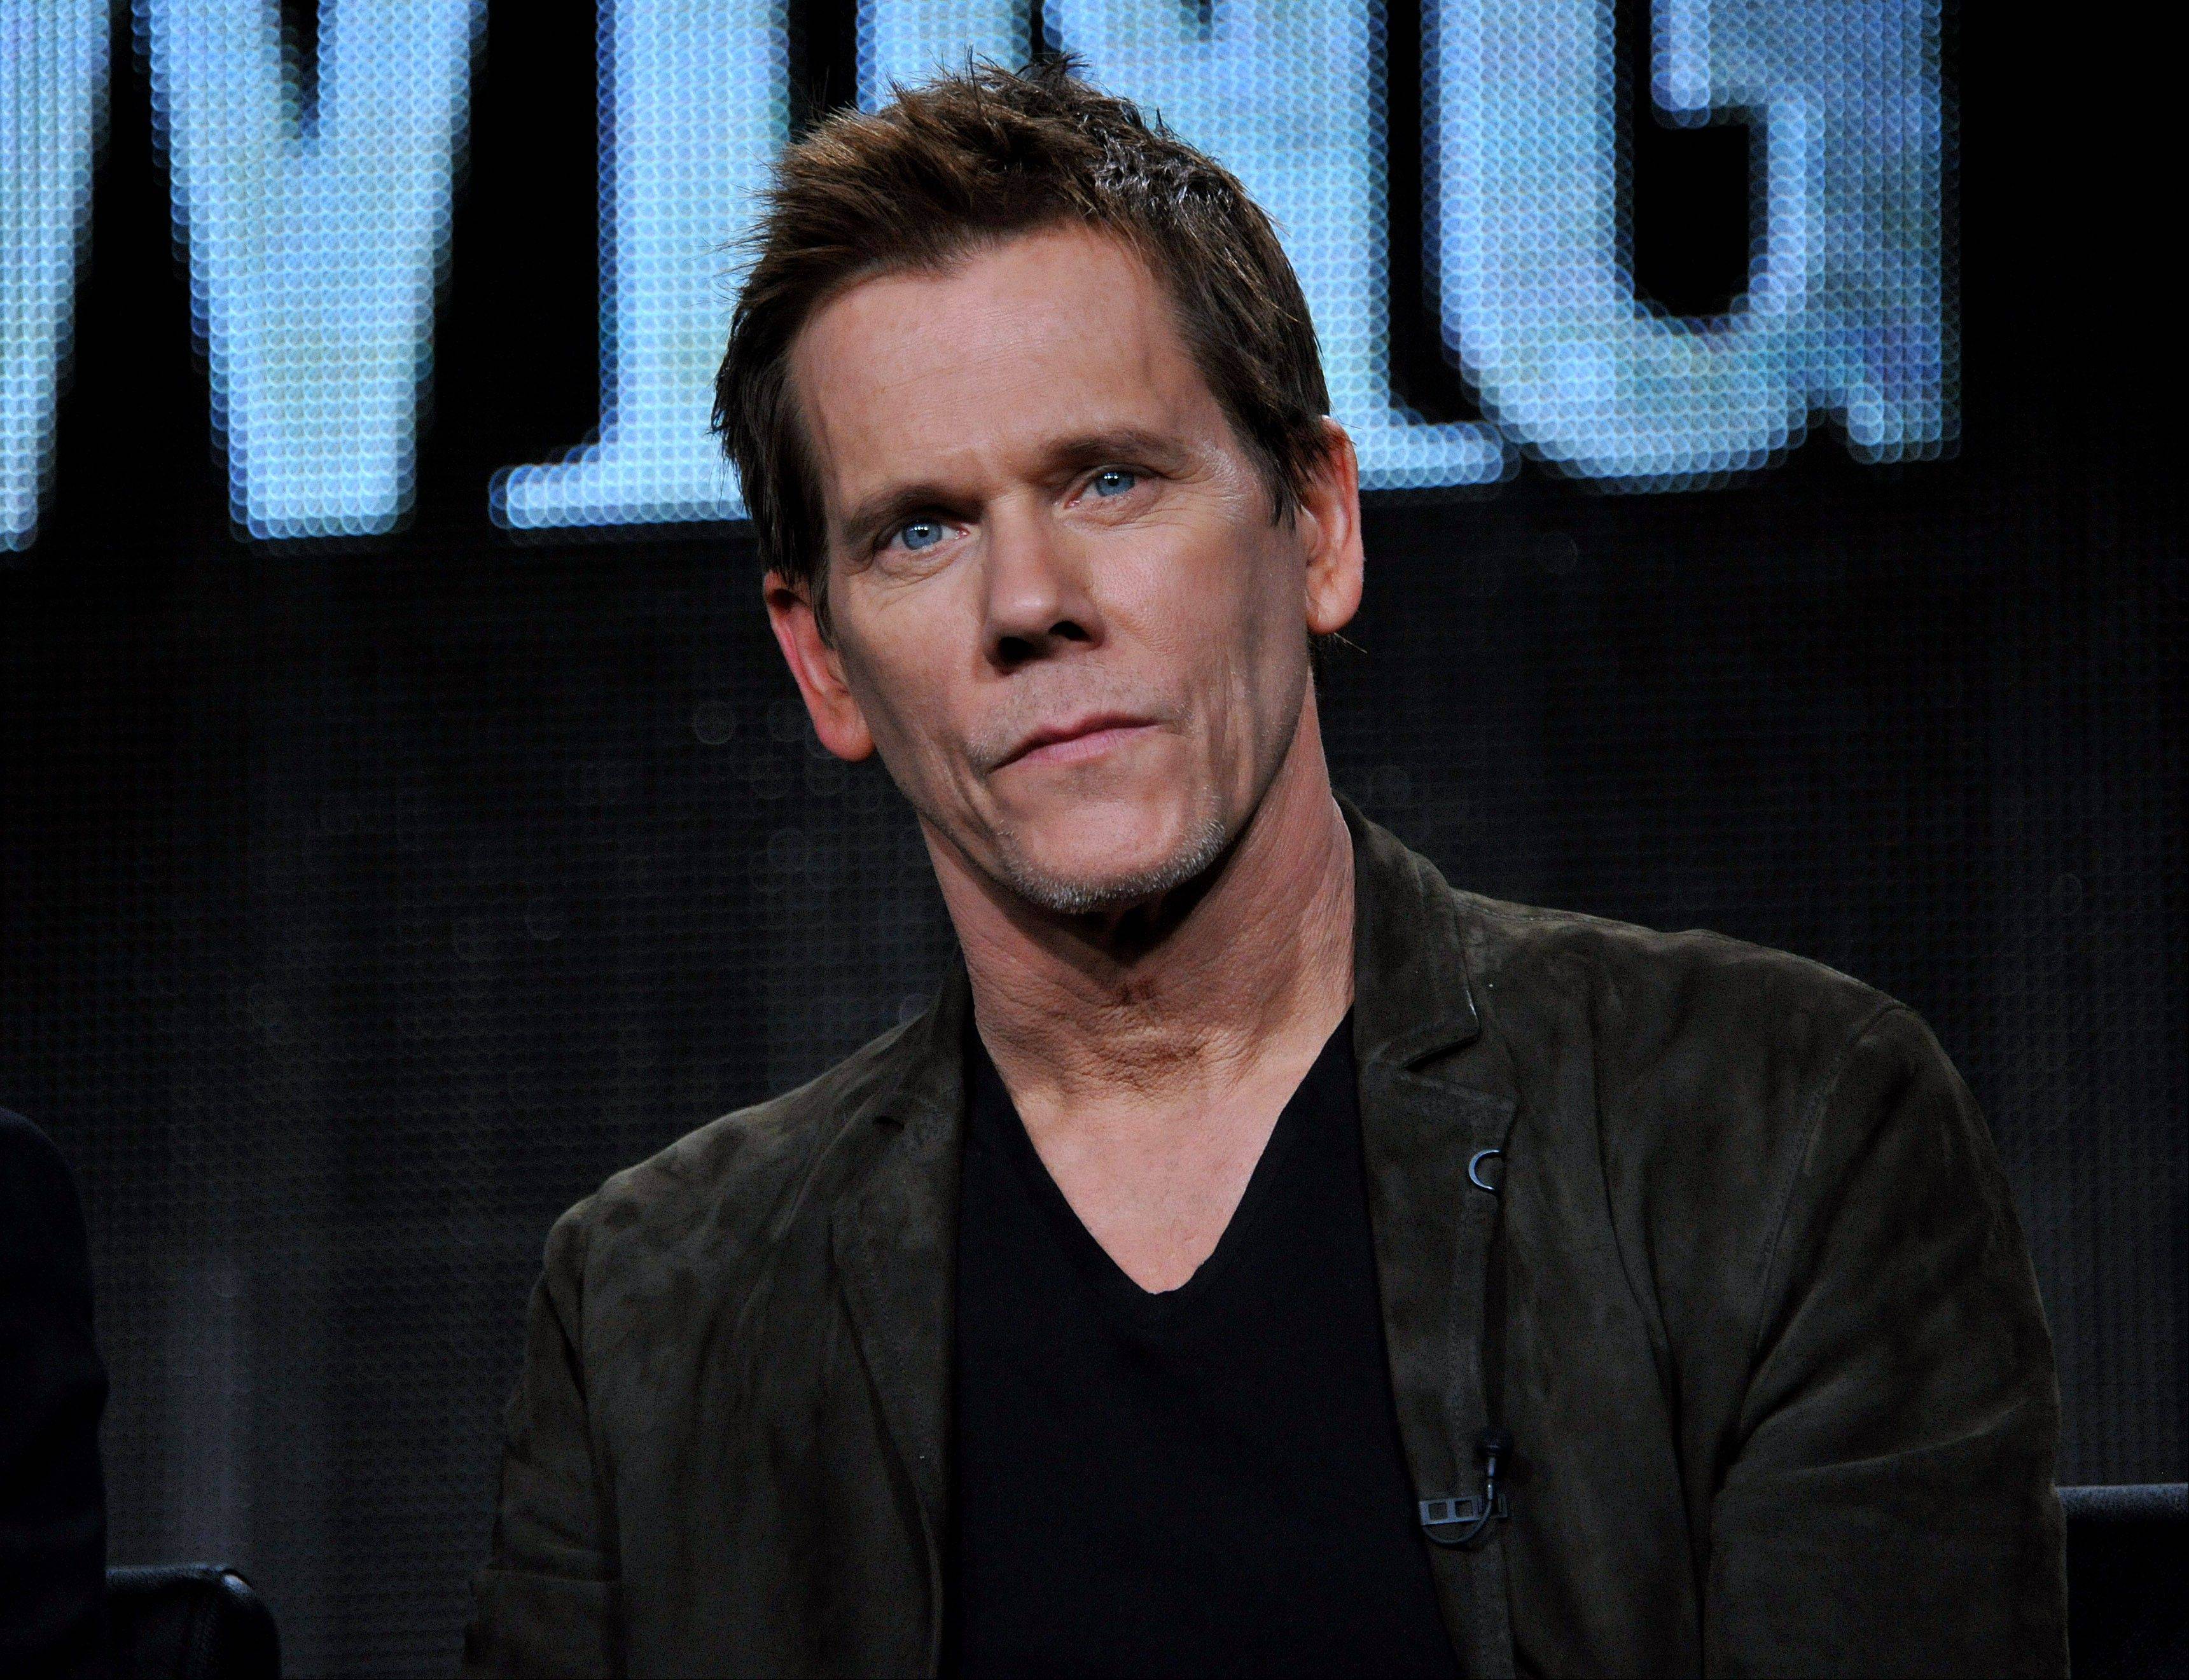 Kevin Bacon at the panel for �The Following� at the FOX Winter 2014 TCA Monday at the Langham Hotel in Pasadena, Calif. The two stars of Fox�s creepy thriller �The Following� admit that their show gives them nightmares. Bacon and James Purefoy both said today that the characters stick with them after work.